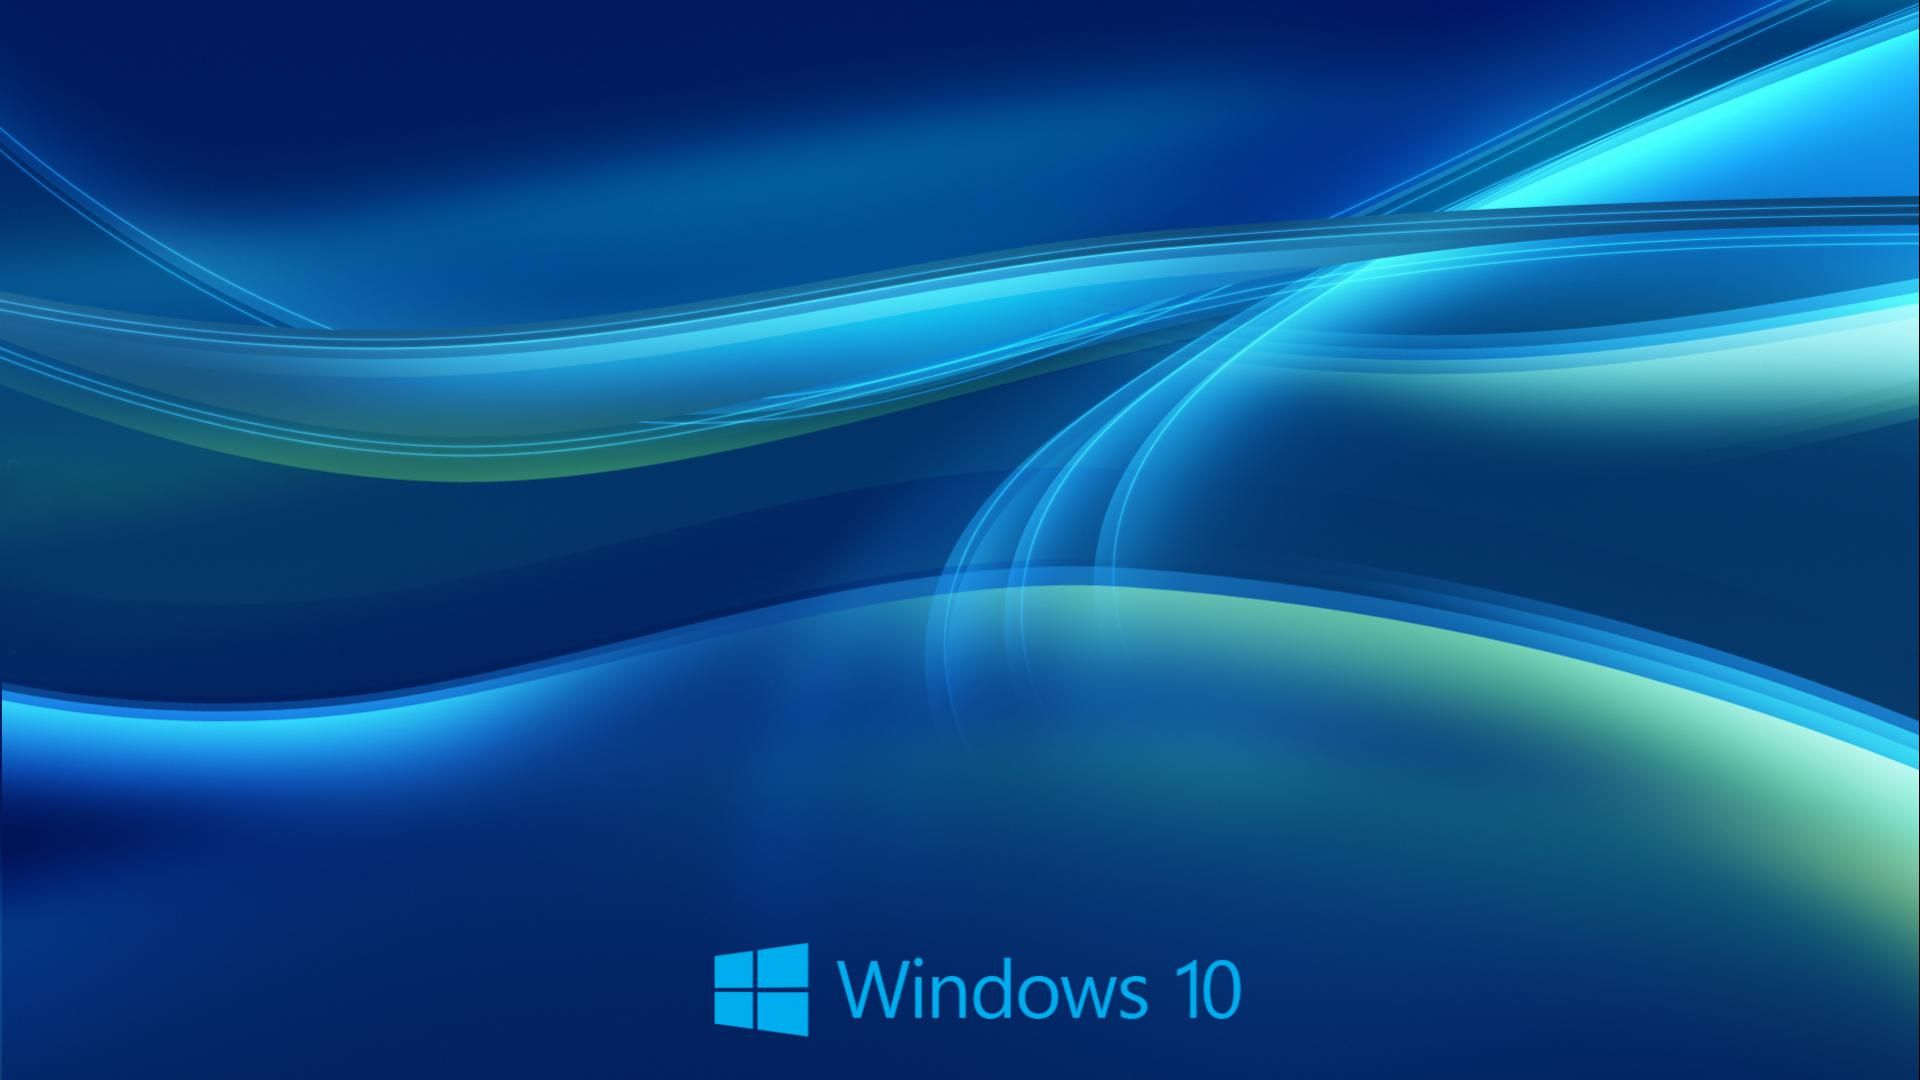 Windows 10 Logo Wallpaper 1920x1080 In 2020 Wallpaper Windows 10 Windows 10 Desktop Backgrounds Windows 10